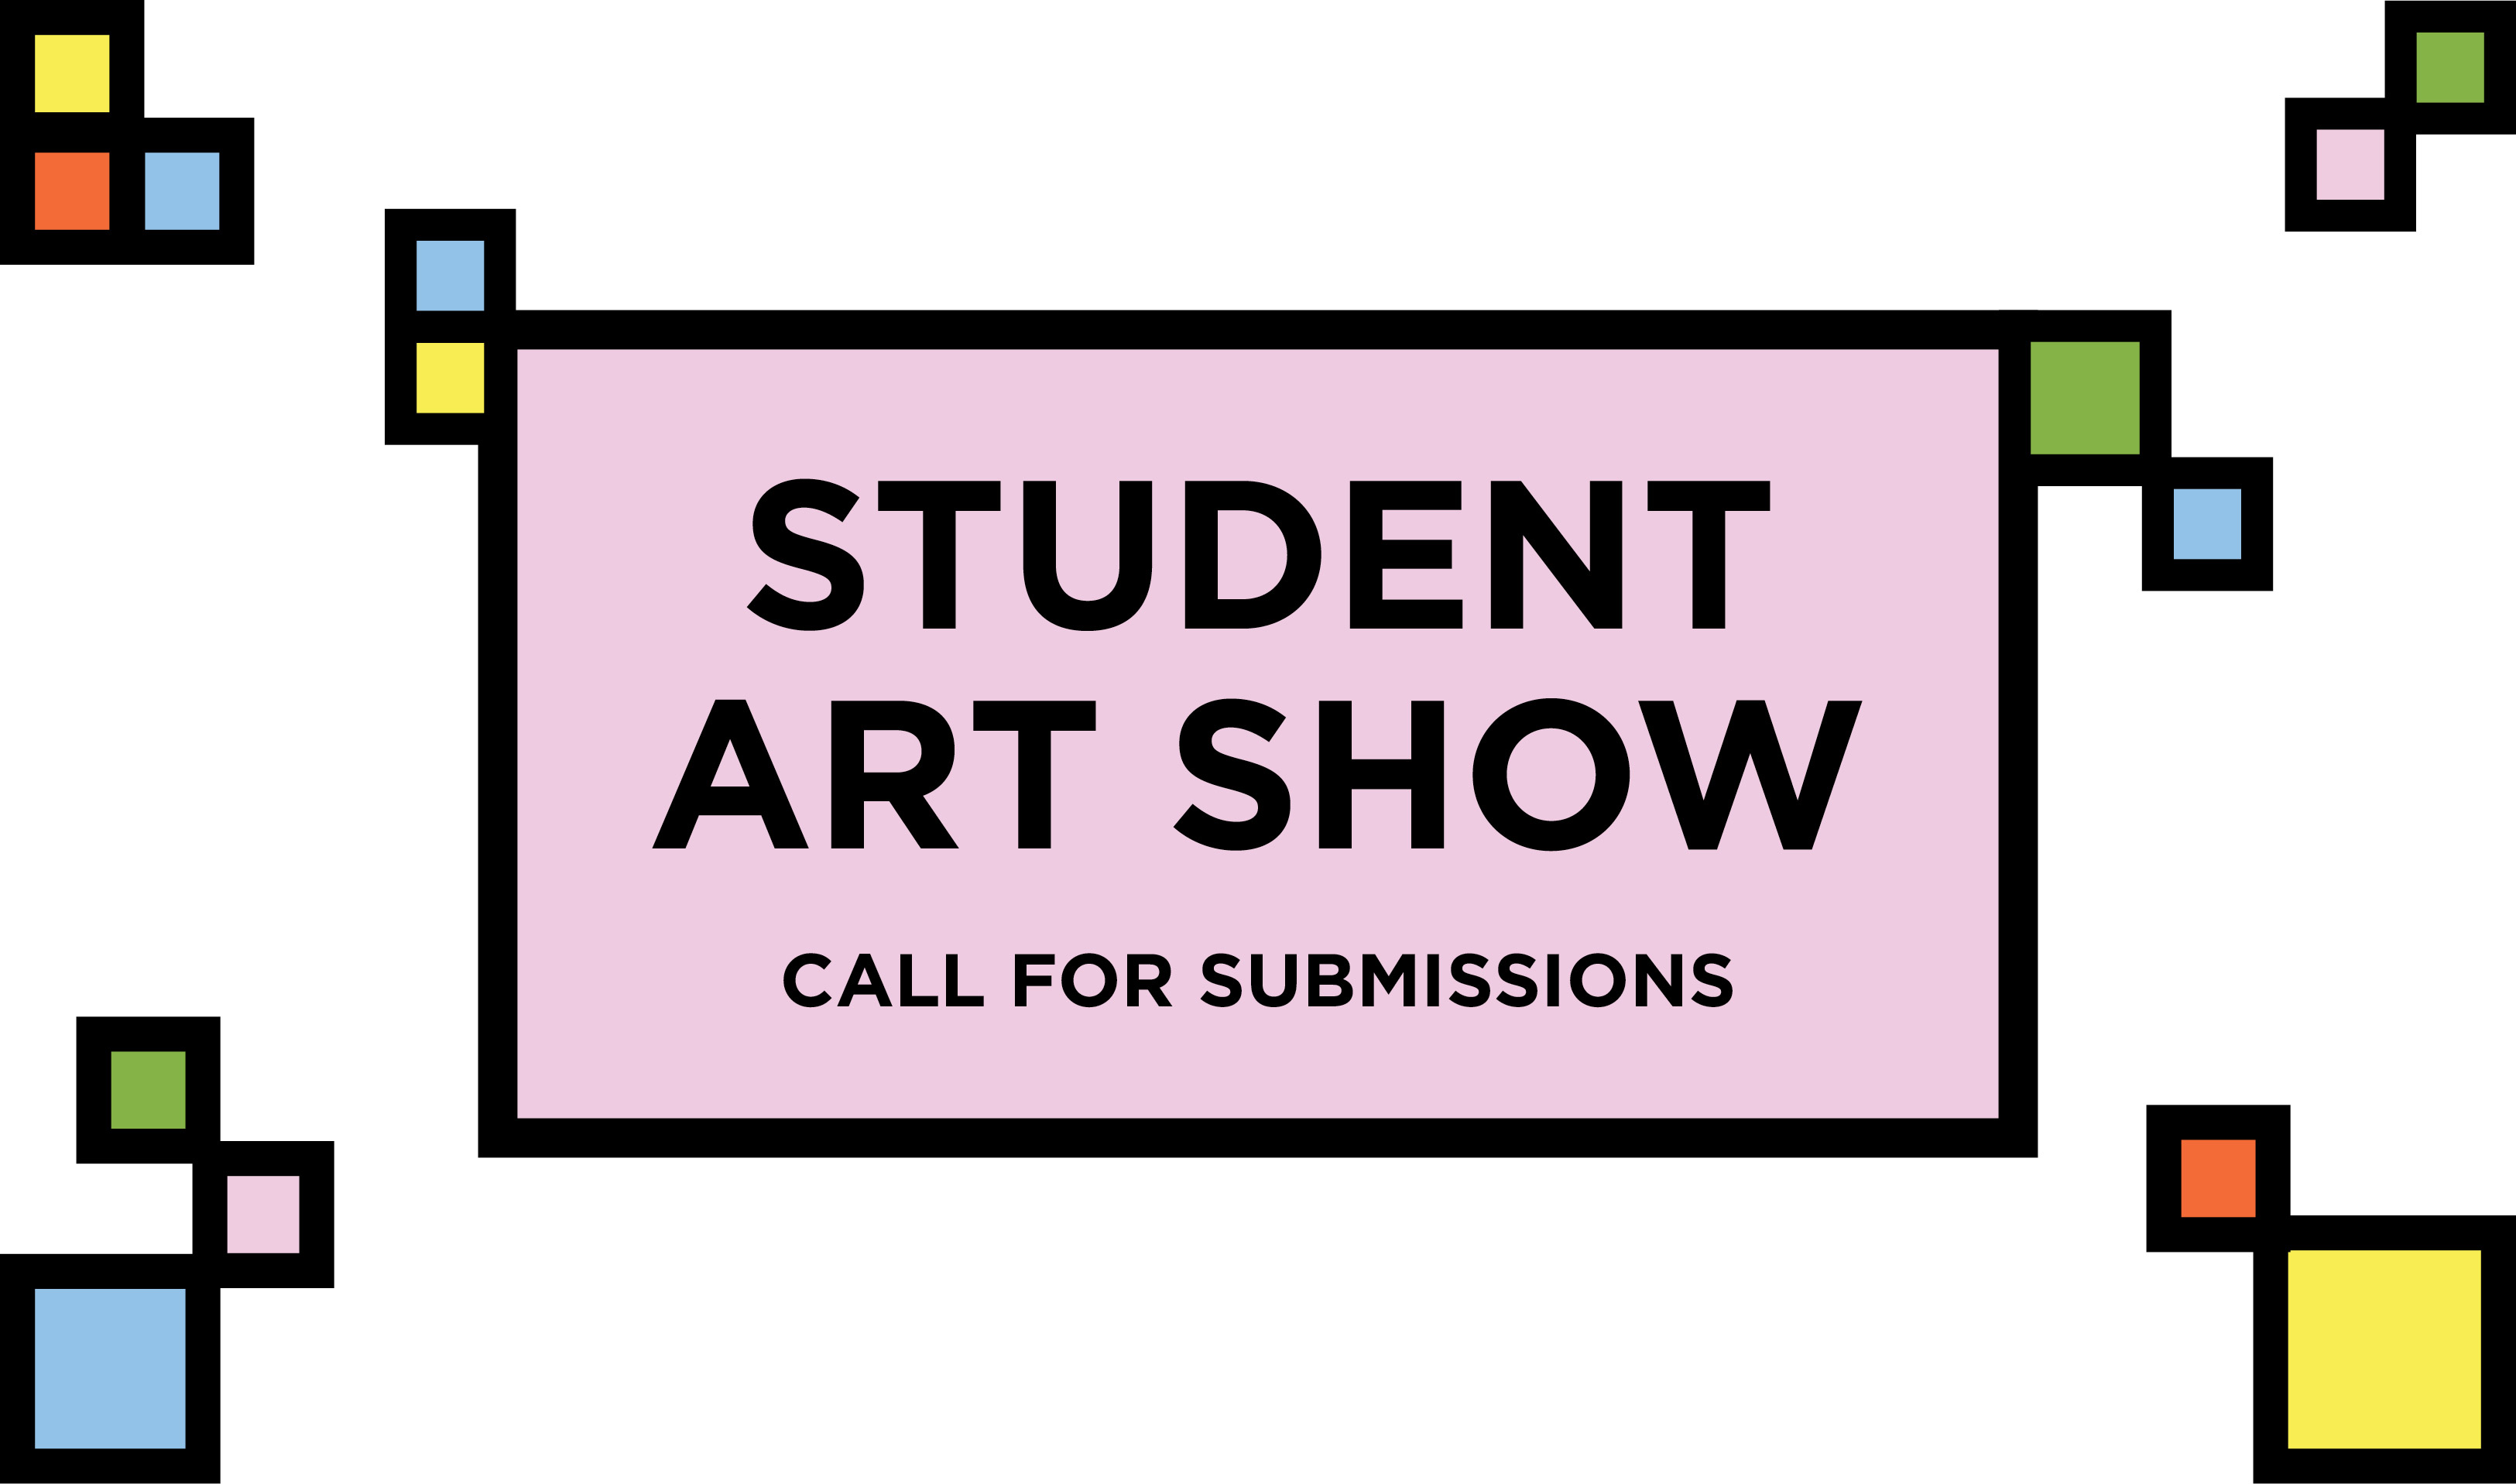 Student Art Show Call for Submission  Slider Image